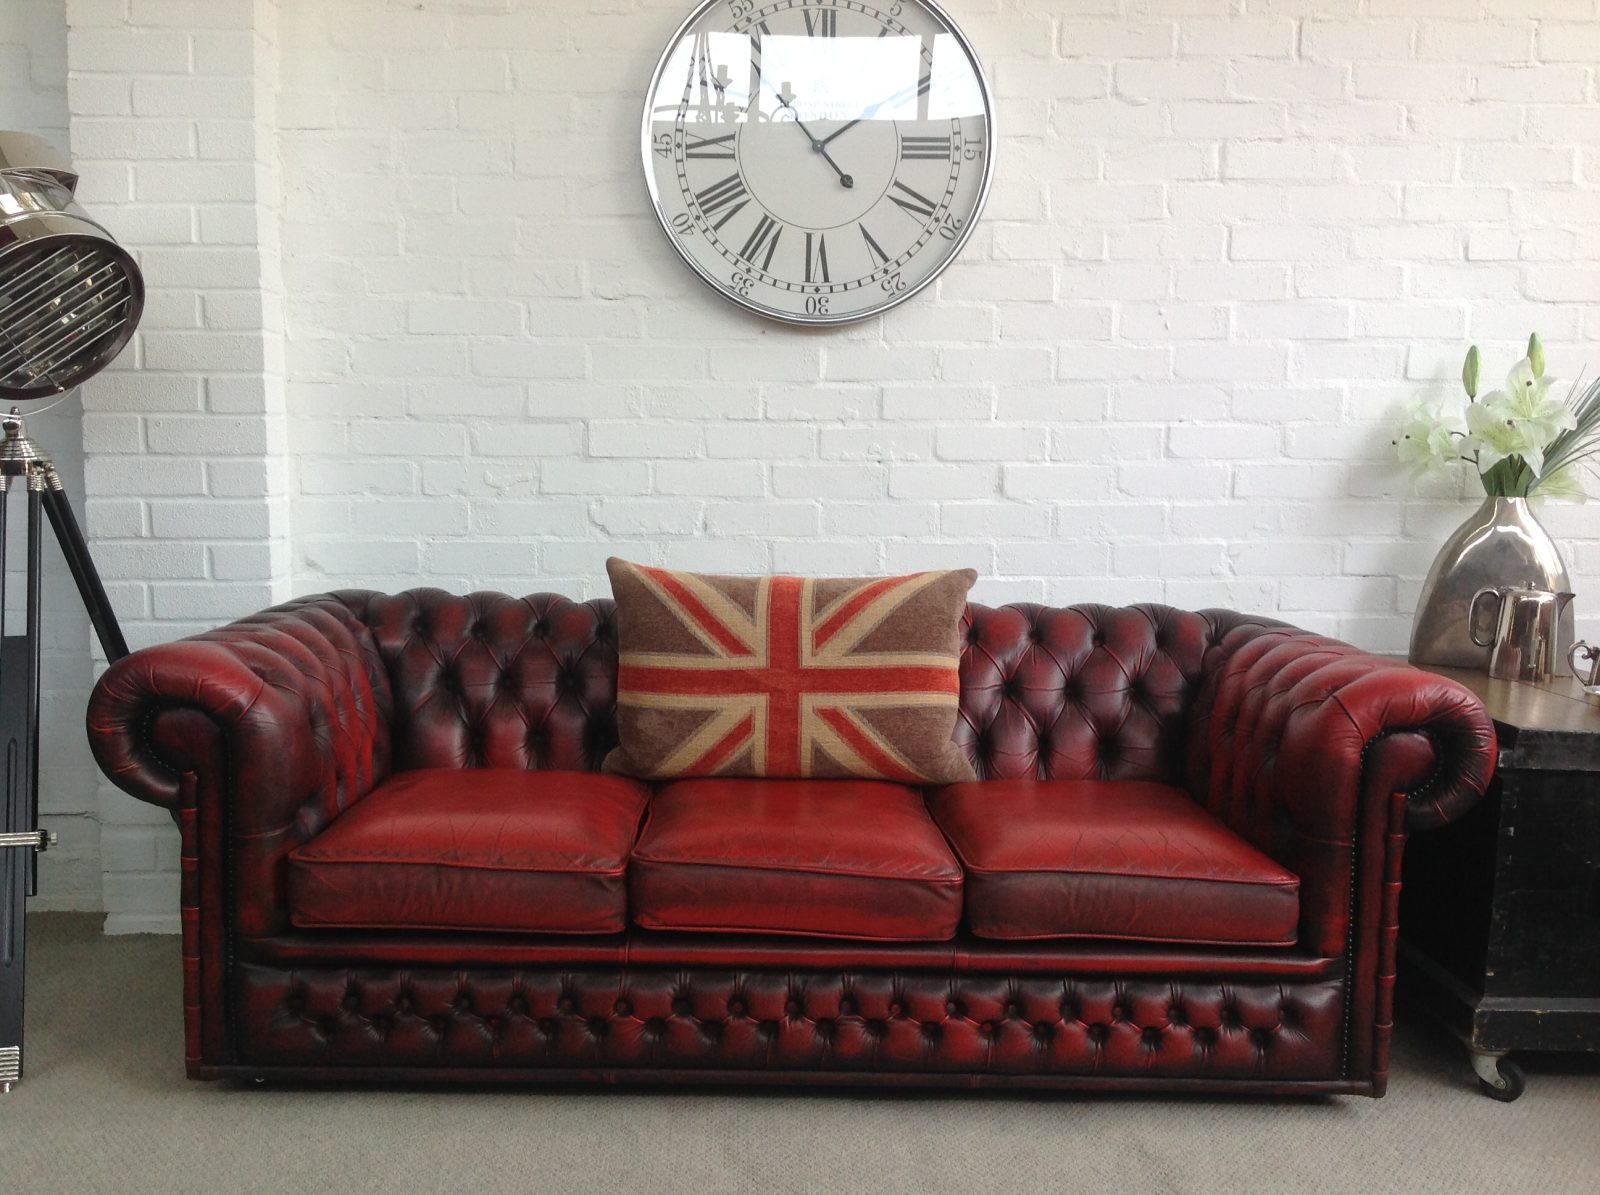 Vintage Oxblood Red Chesterfield Sofa.